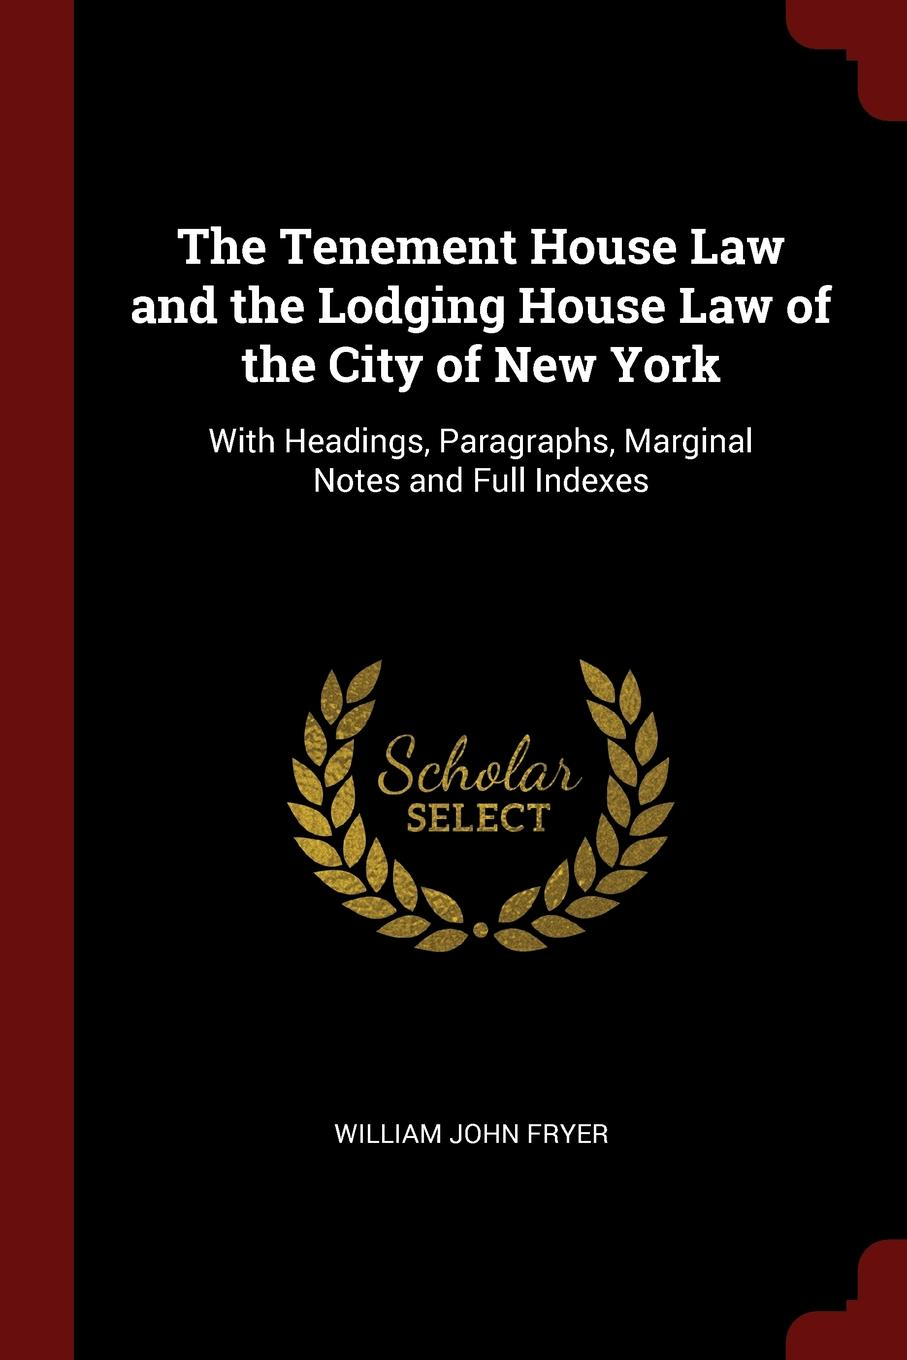 The Tenement House Law and the Lodging House Law of the City of New York. With Headings, Paragraphs, Marginal Notes and Full Indexes This work has been selected by scholars as being culturally...